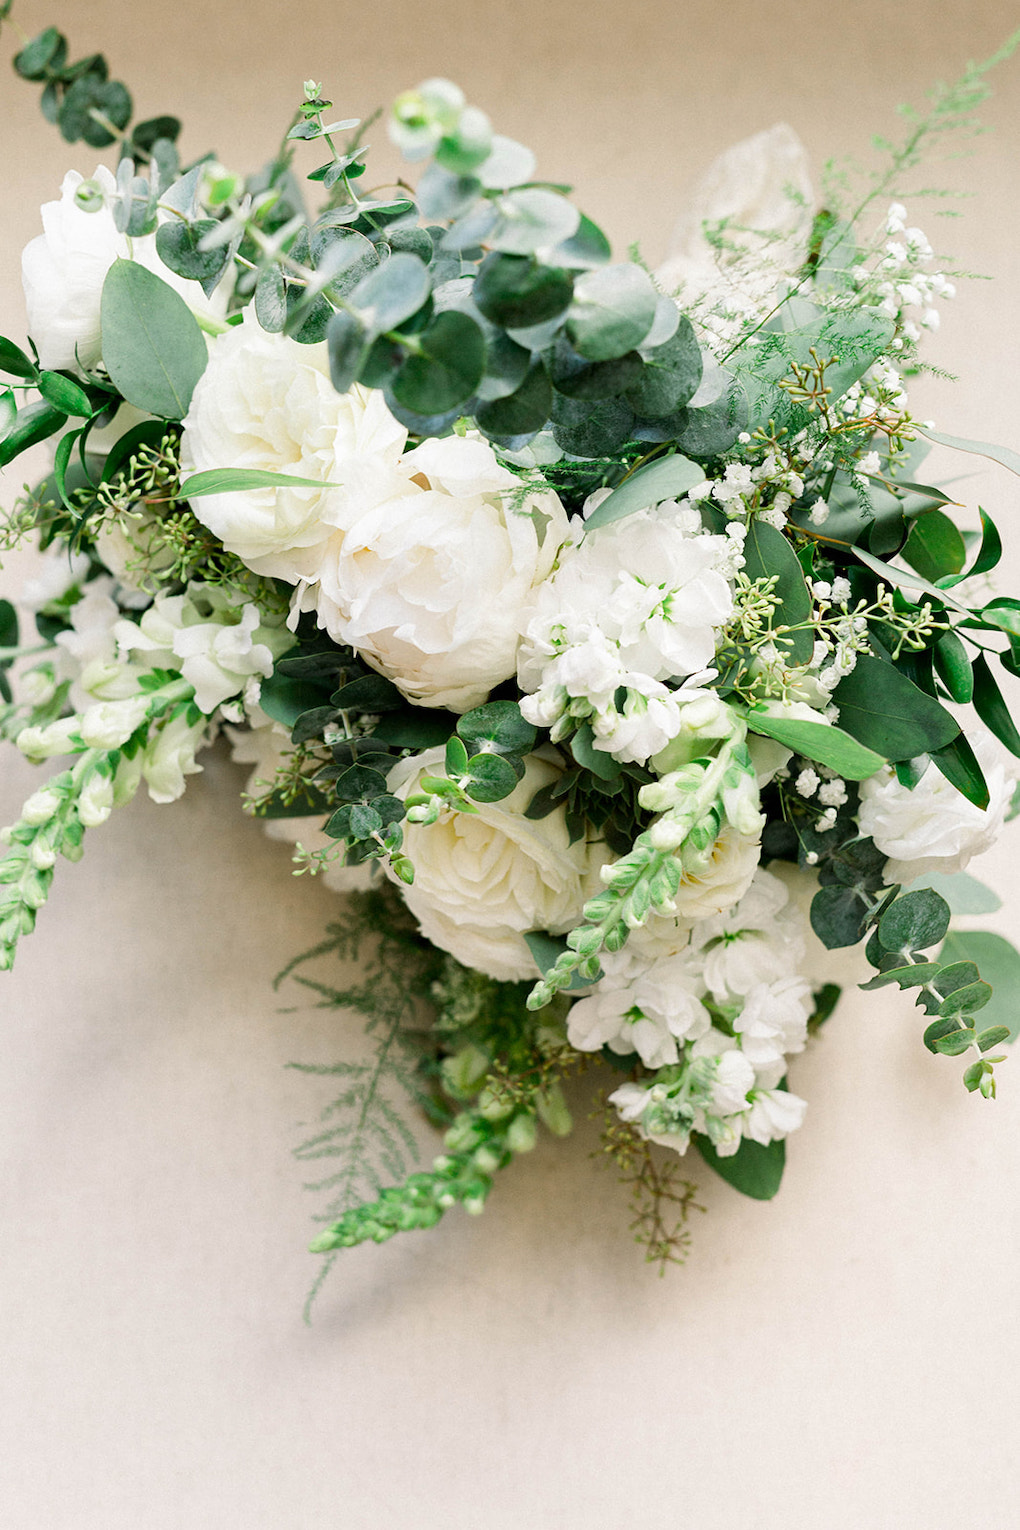 White and green wedding bouquet: Pittsburgh Botanic Garden wedding planned by Exhale Events. See more wedding inspiration at exhale-events.com!